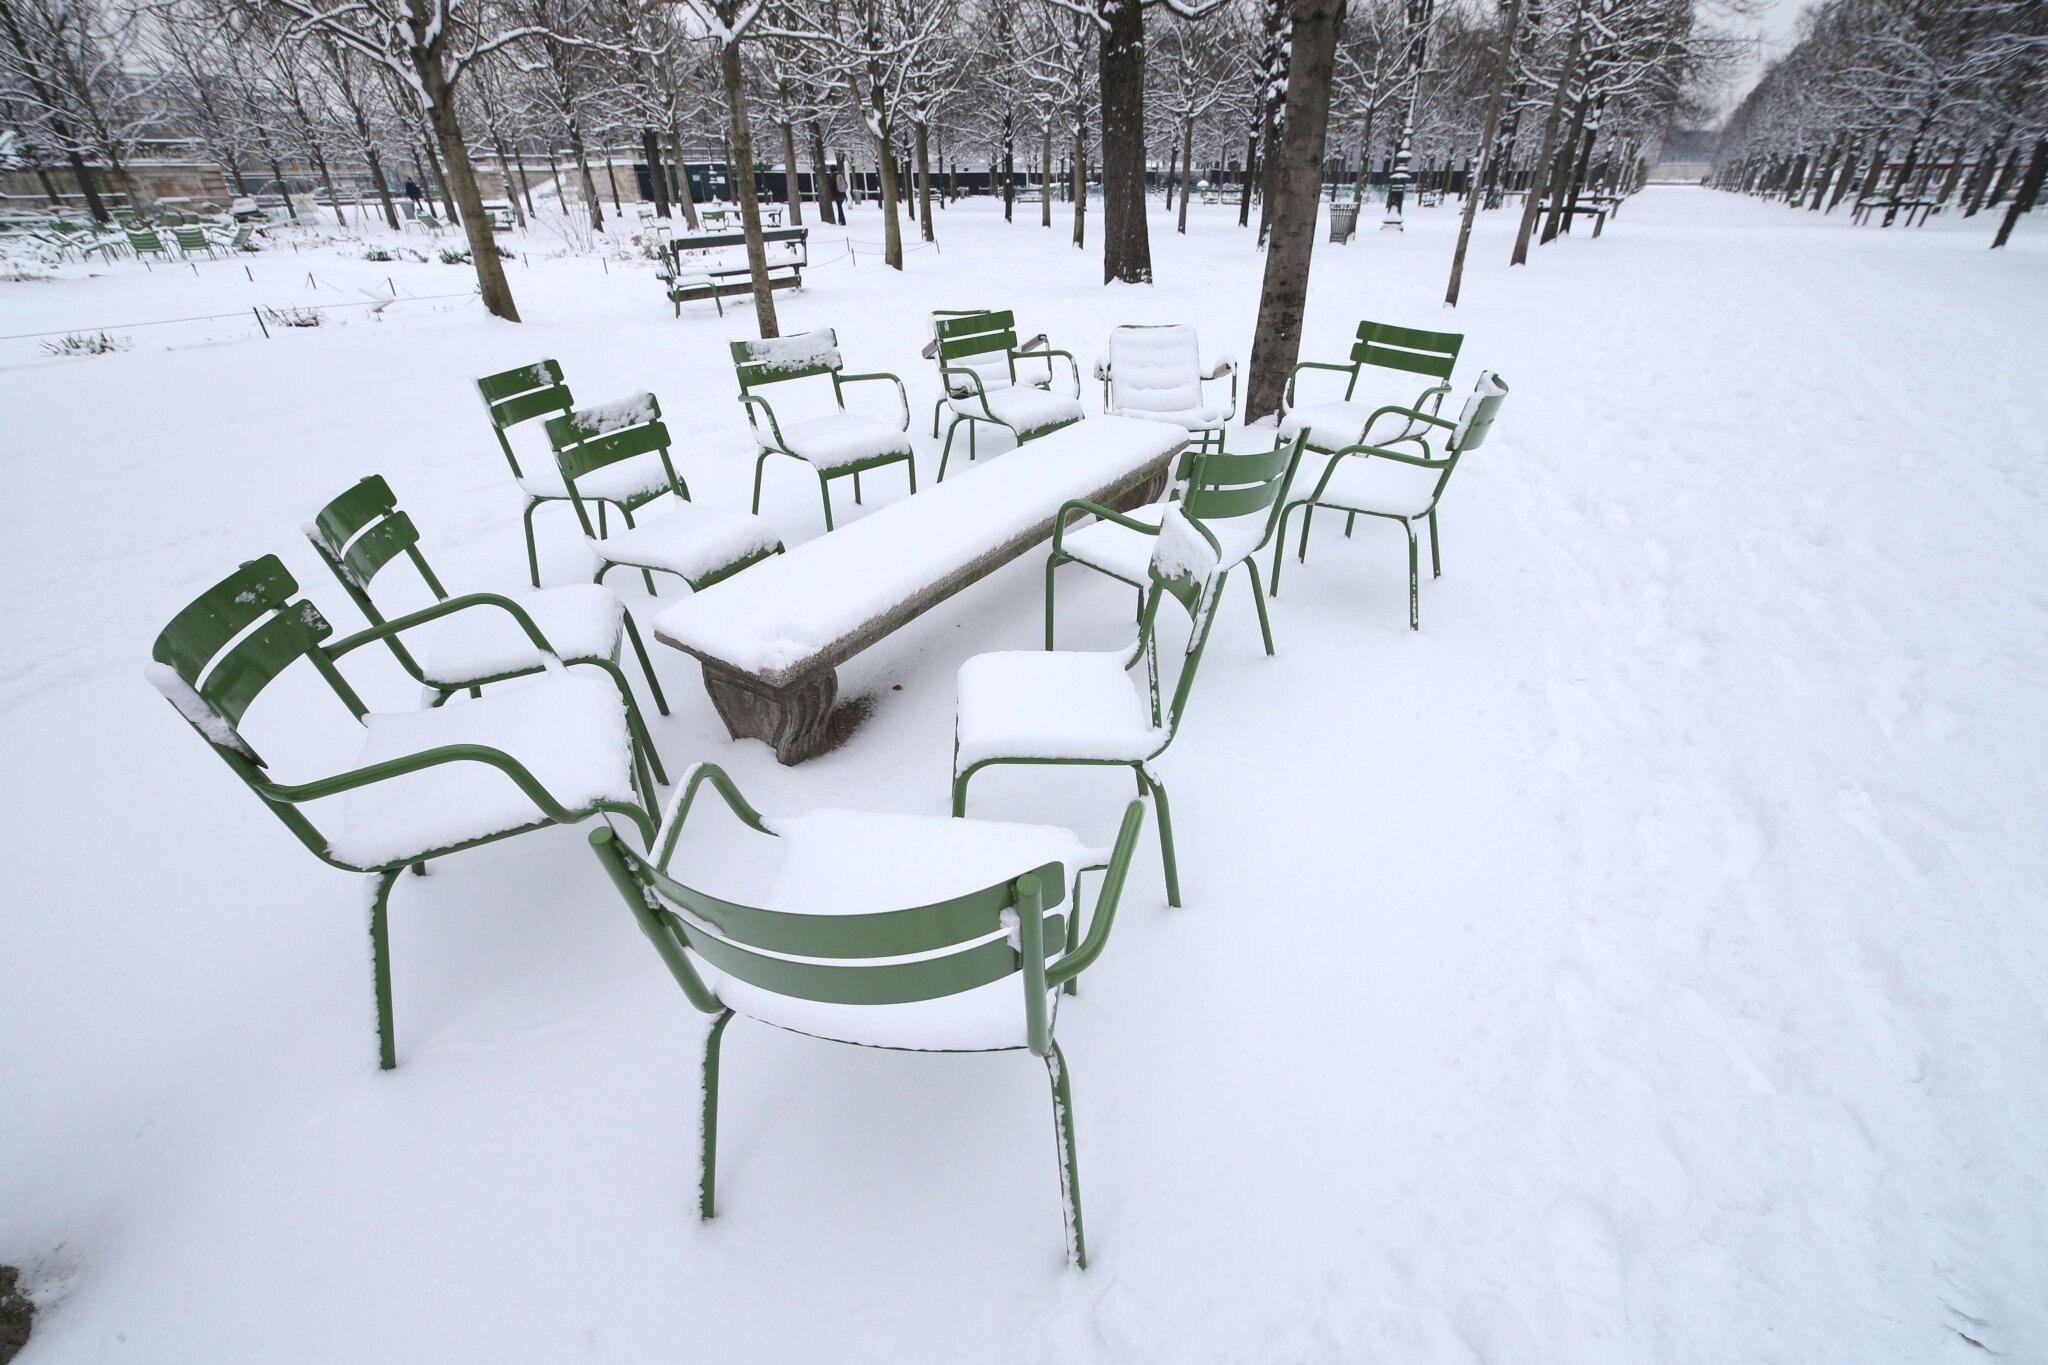 Paris sous la neige. © Photo Michel Stoupak. Sam 19.01.2013, 11:24.